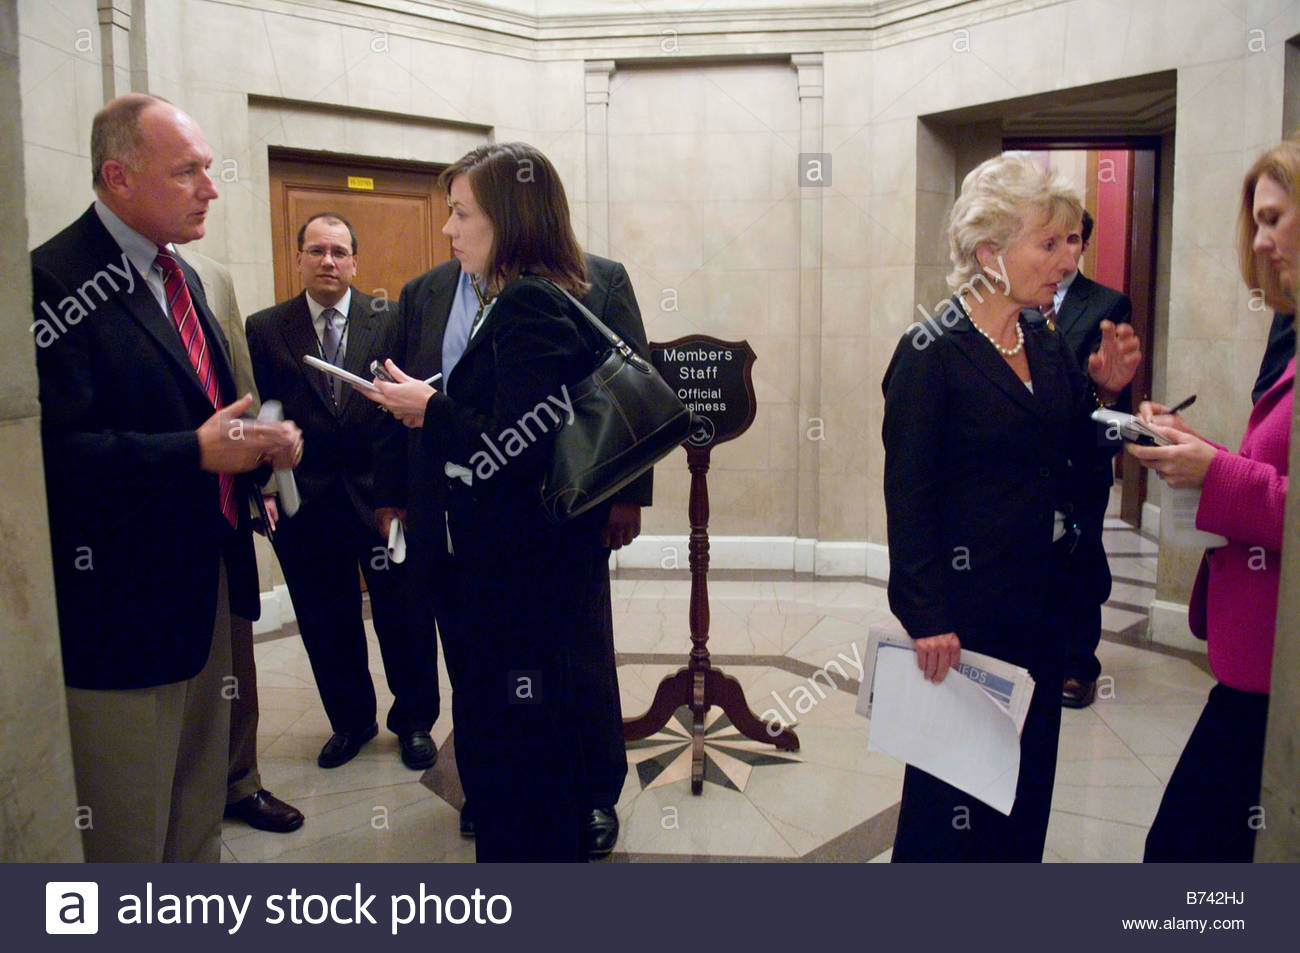 07 25 06 House Select Intelligence Chairman Peter Hoekstra R Mich and ranking member Jane Harman D Calif talk to - Stock Image